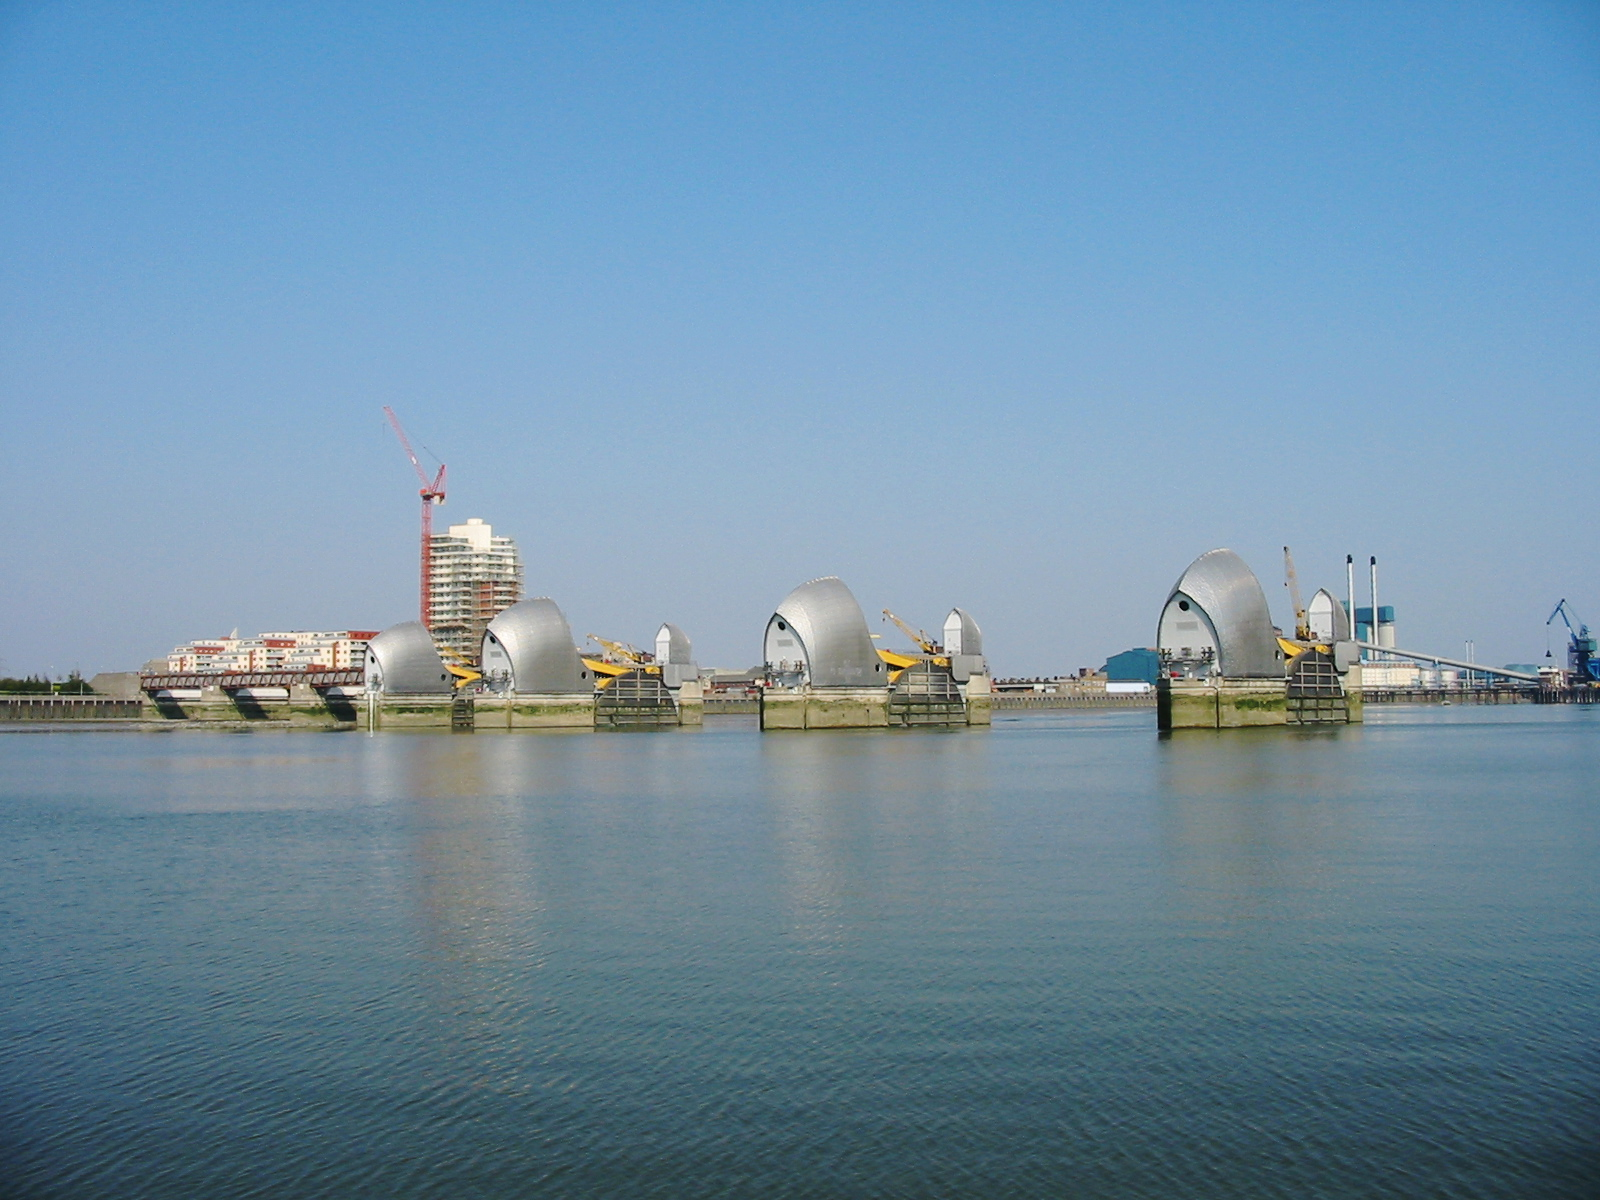 The River Thames Flood Barrier